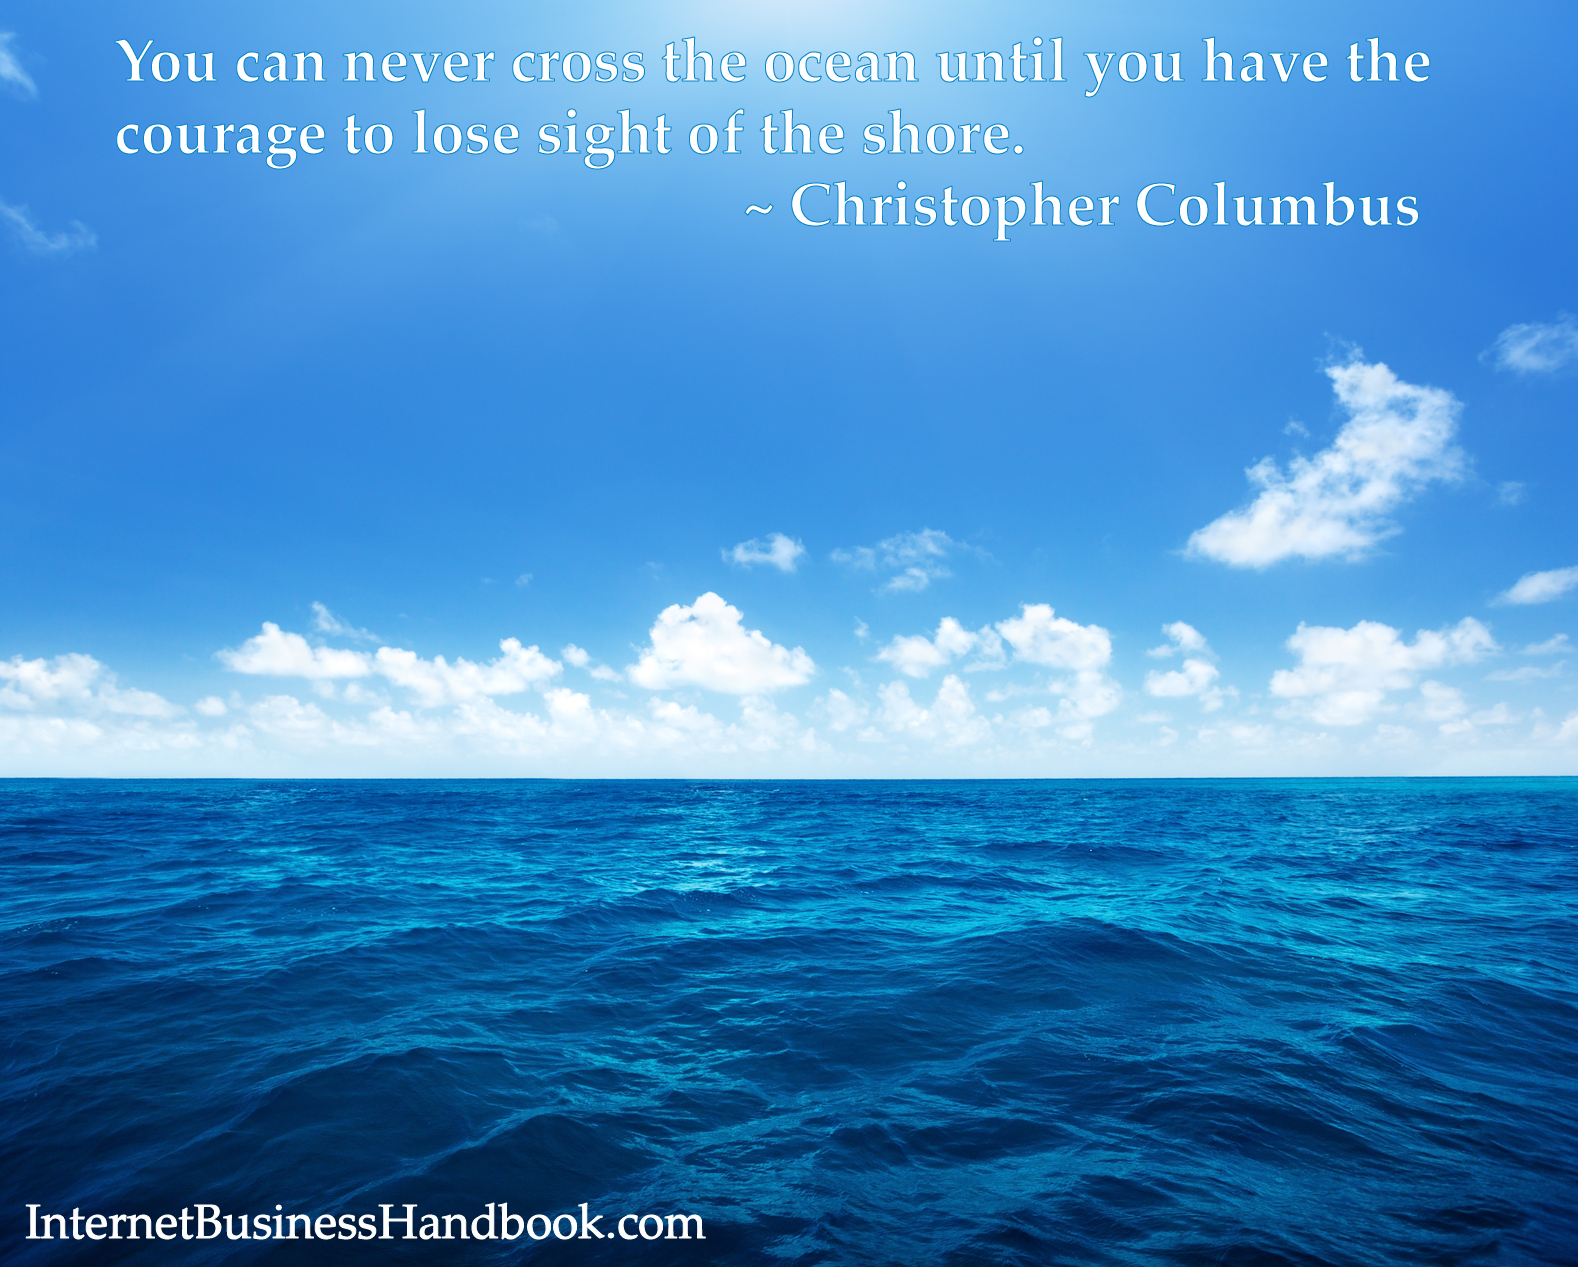 You will never cross the ocean until you have the courage to lose sight of the shore. ~ Christopher Columbus